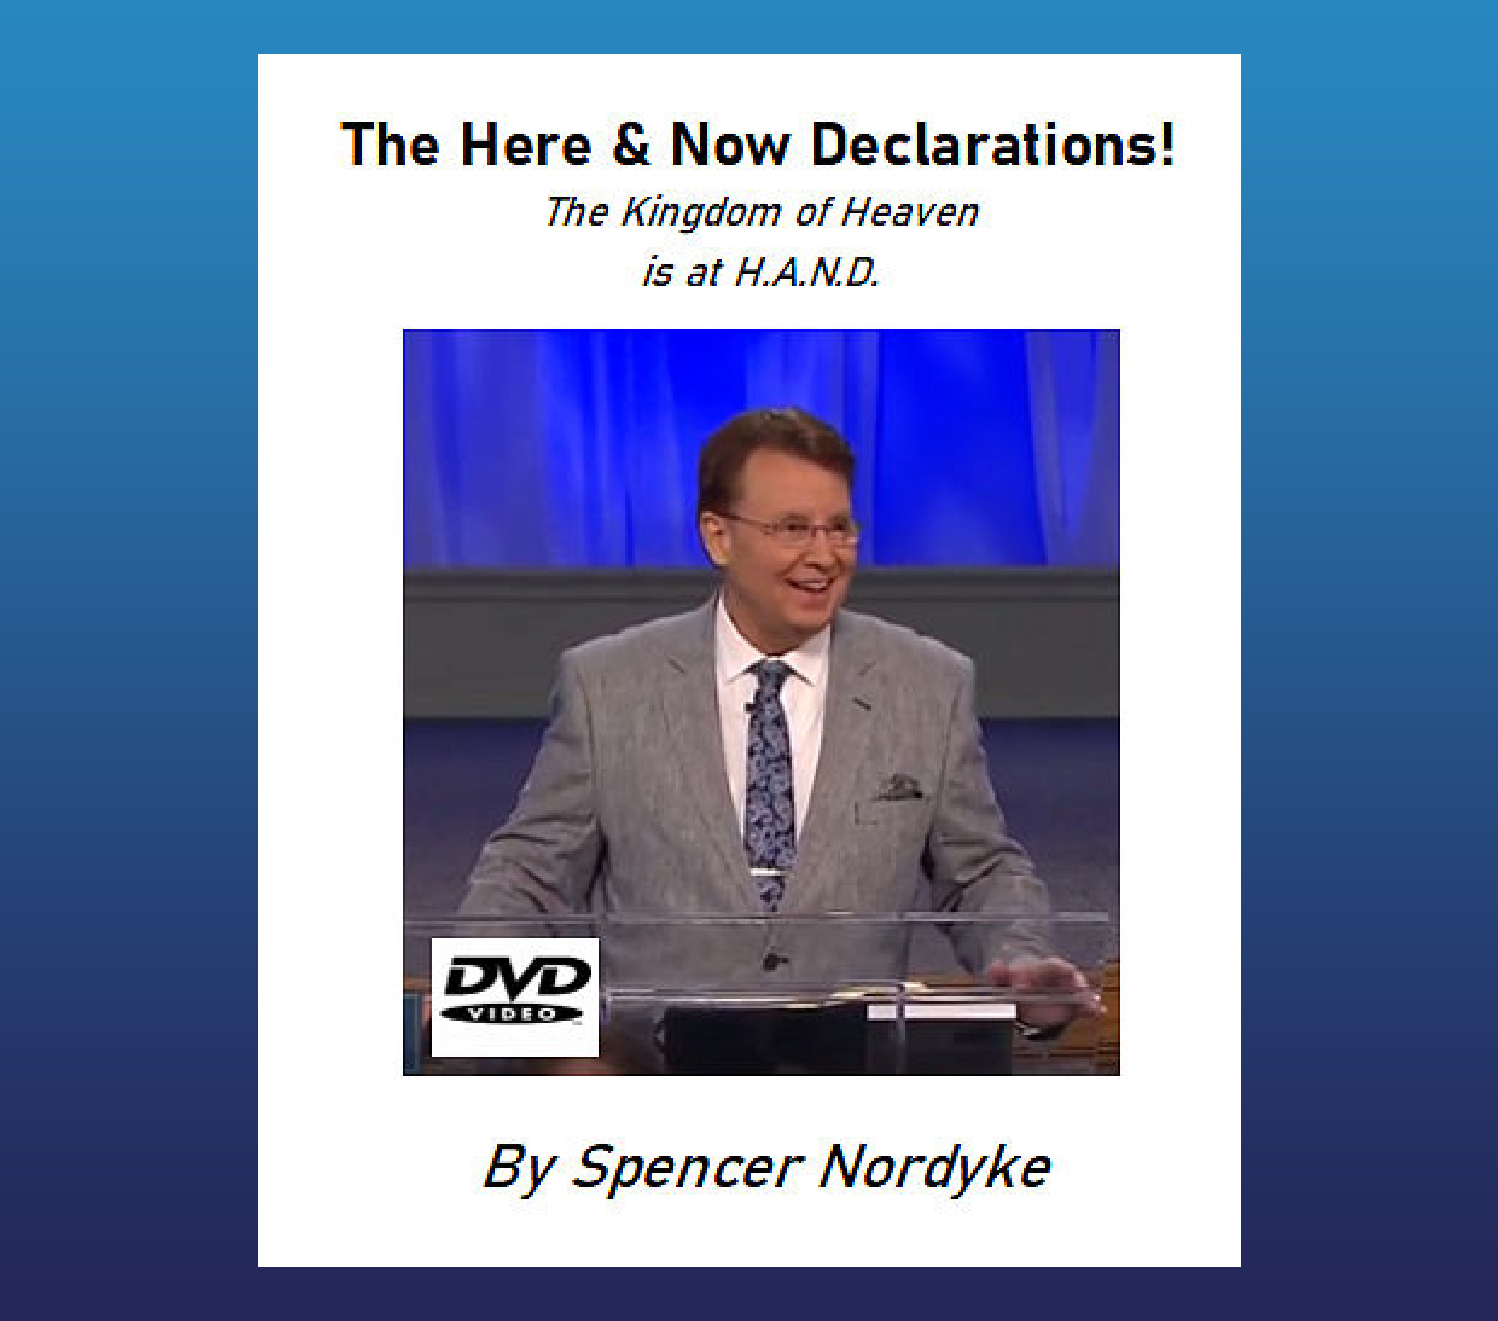 The Here and Now Declarations!  DVD